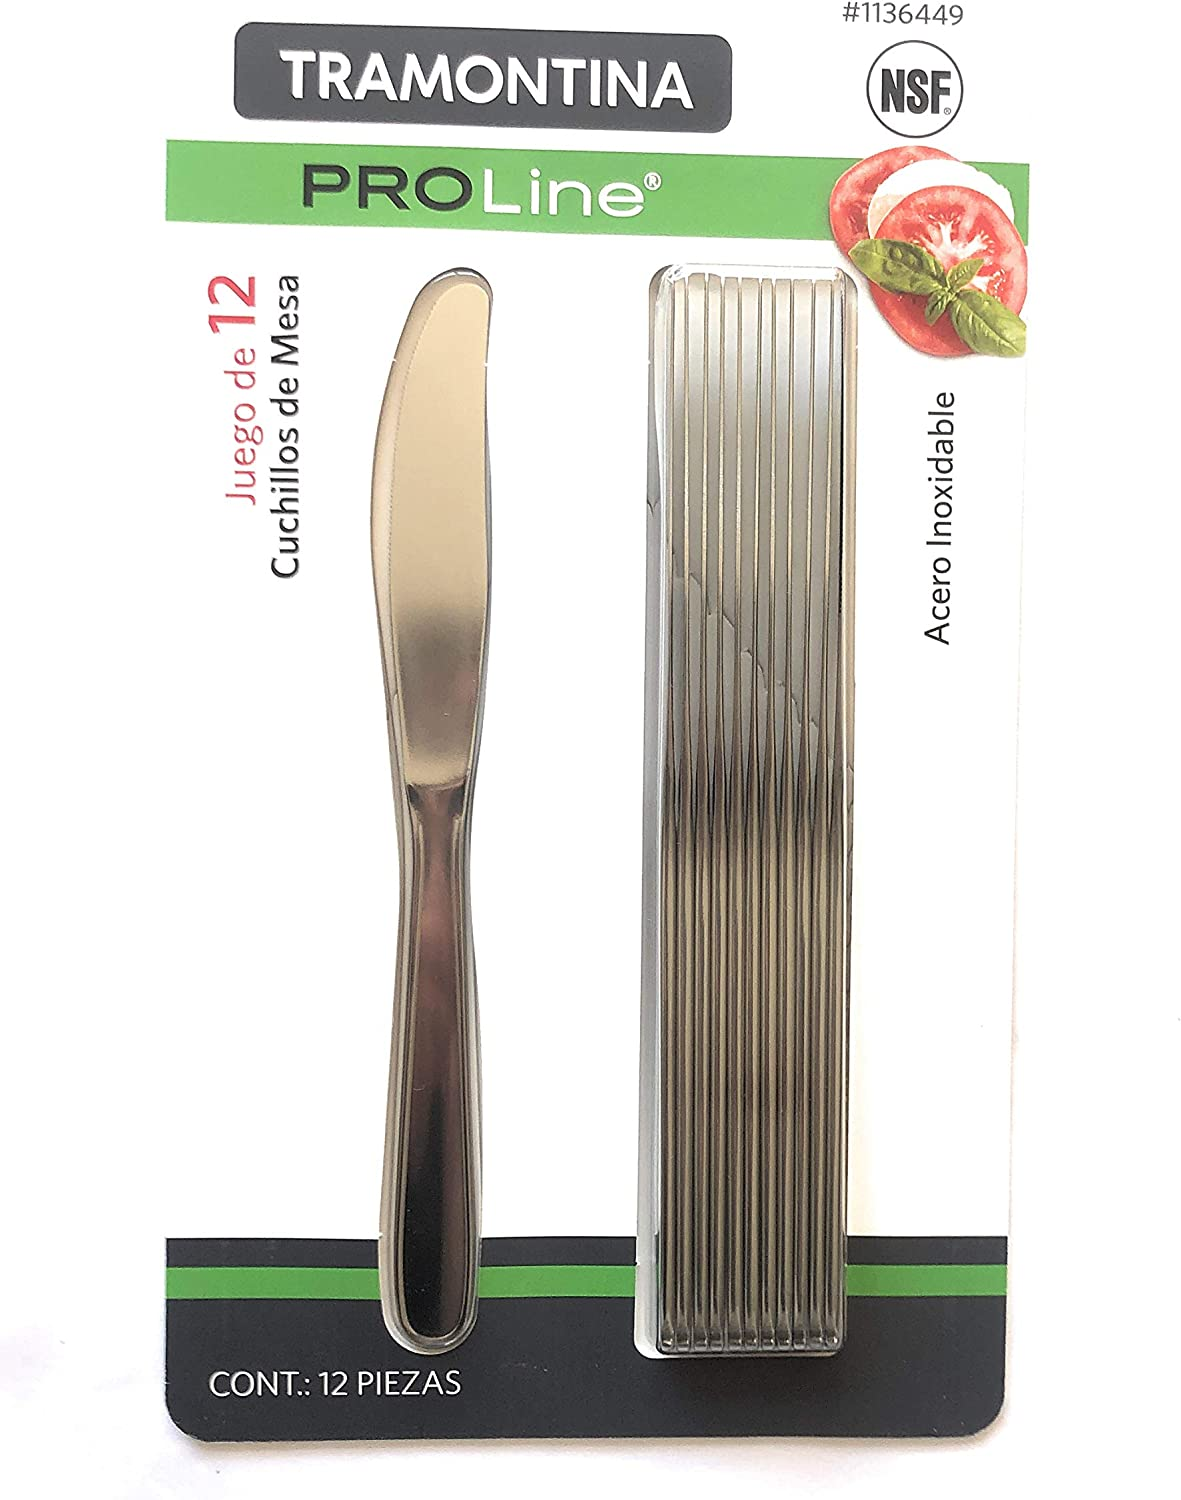 Tramontina PROLine 12 Pack Knives Dinner Stainless New Shipping Free Shipping Steel Sales results No. 1